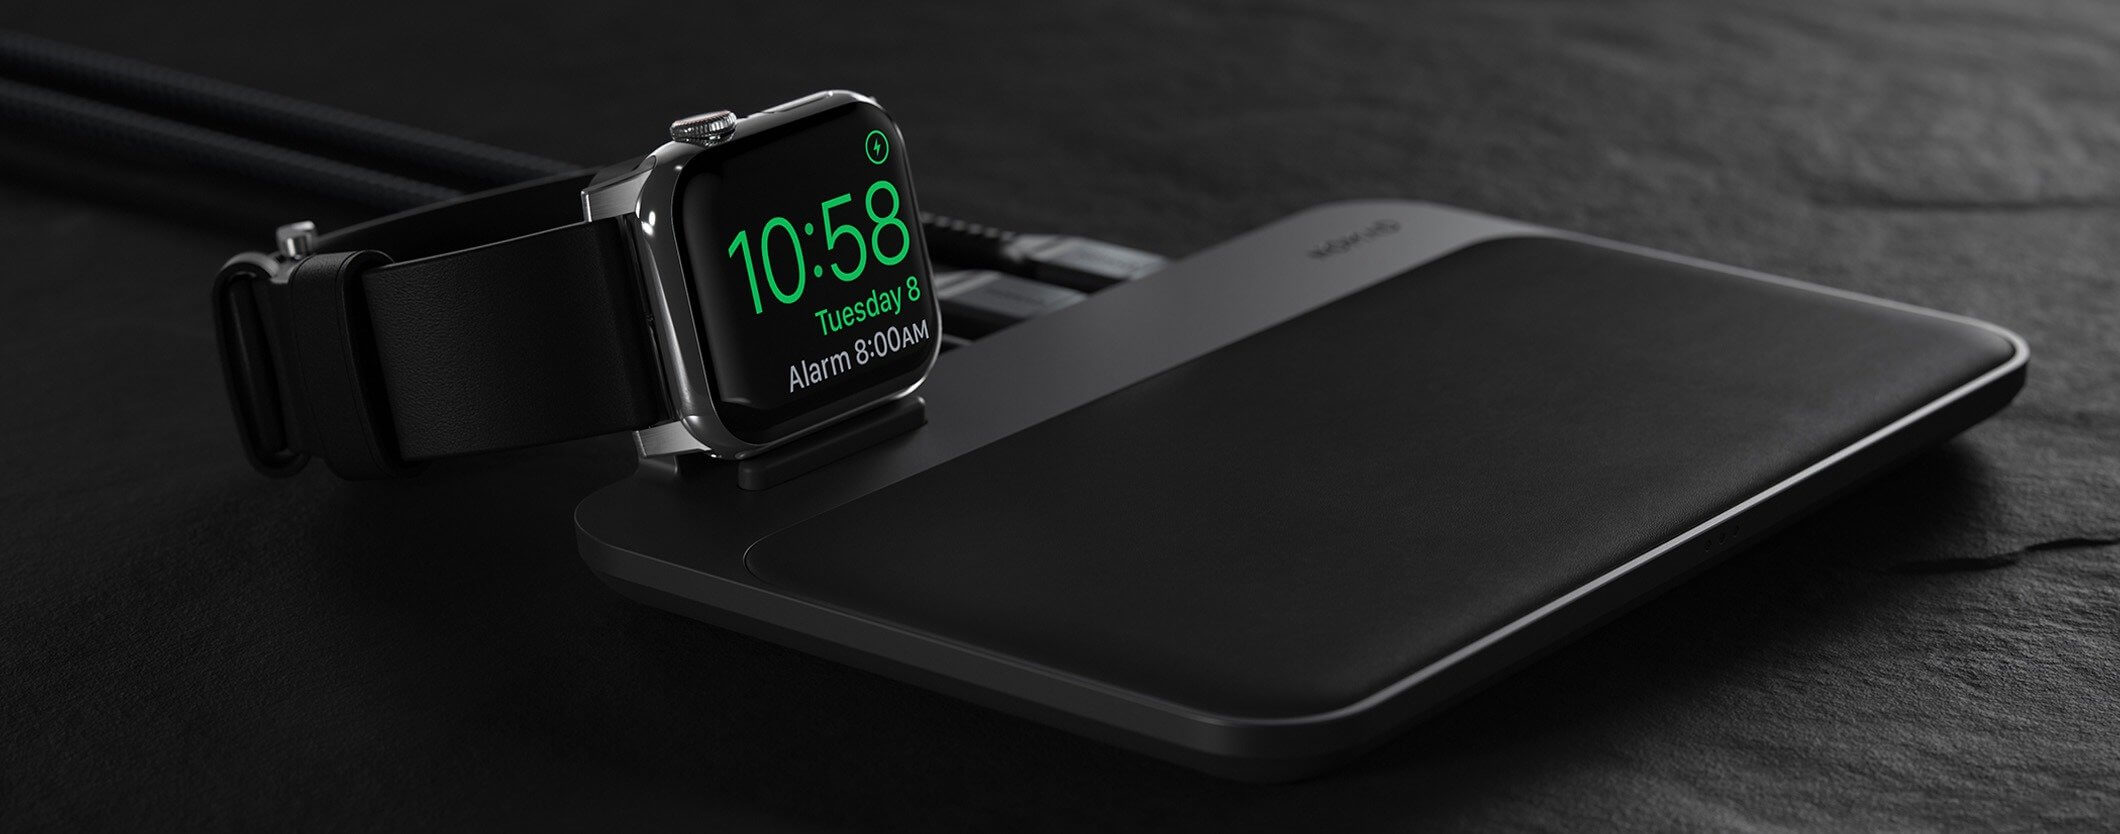 Nomad apple wireless charging station